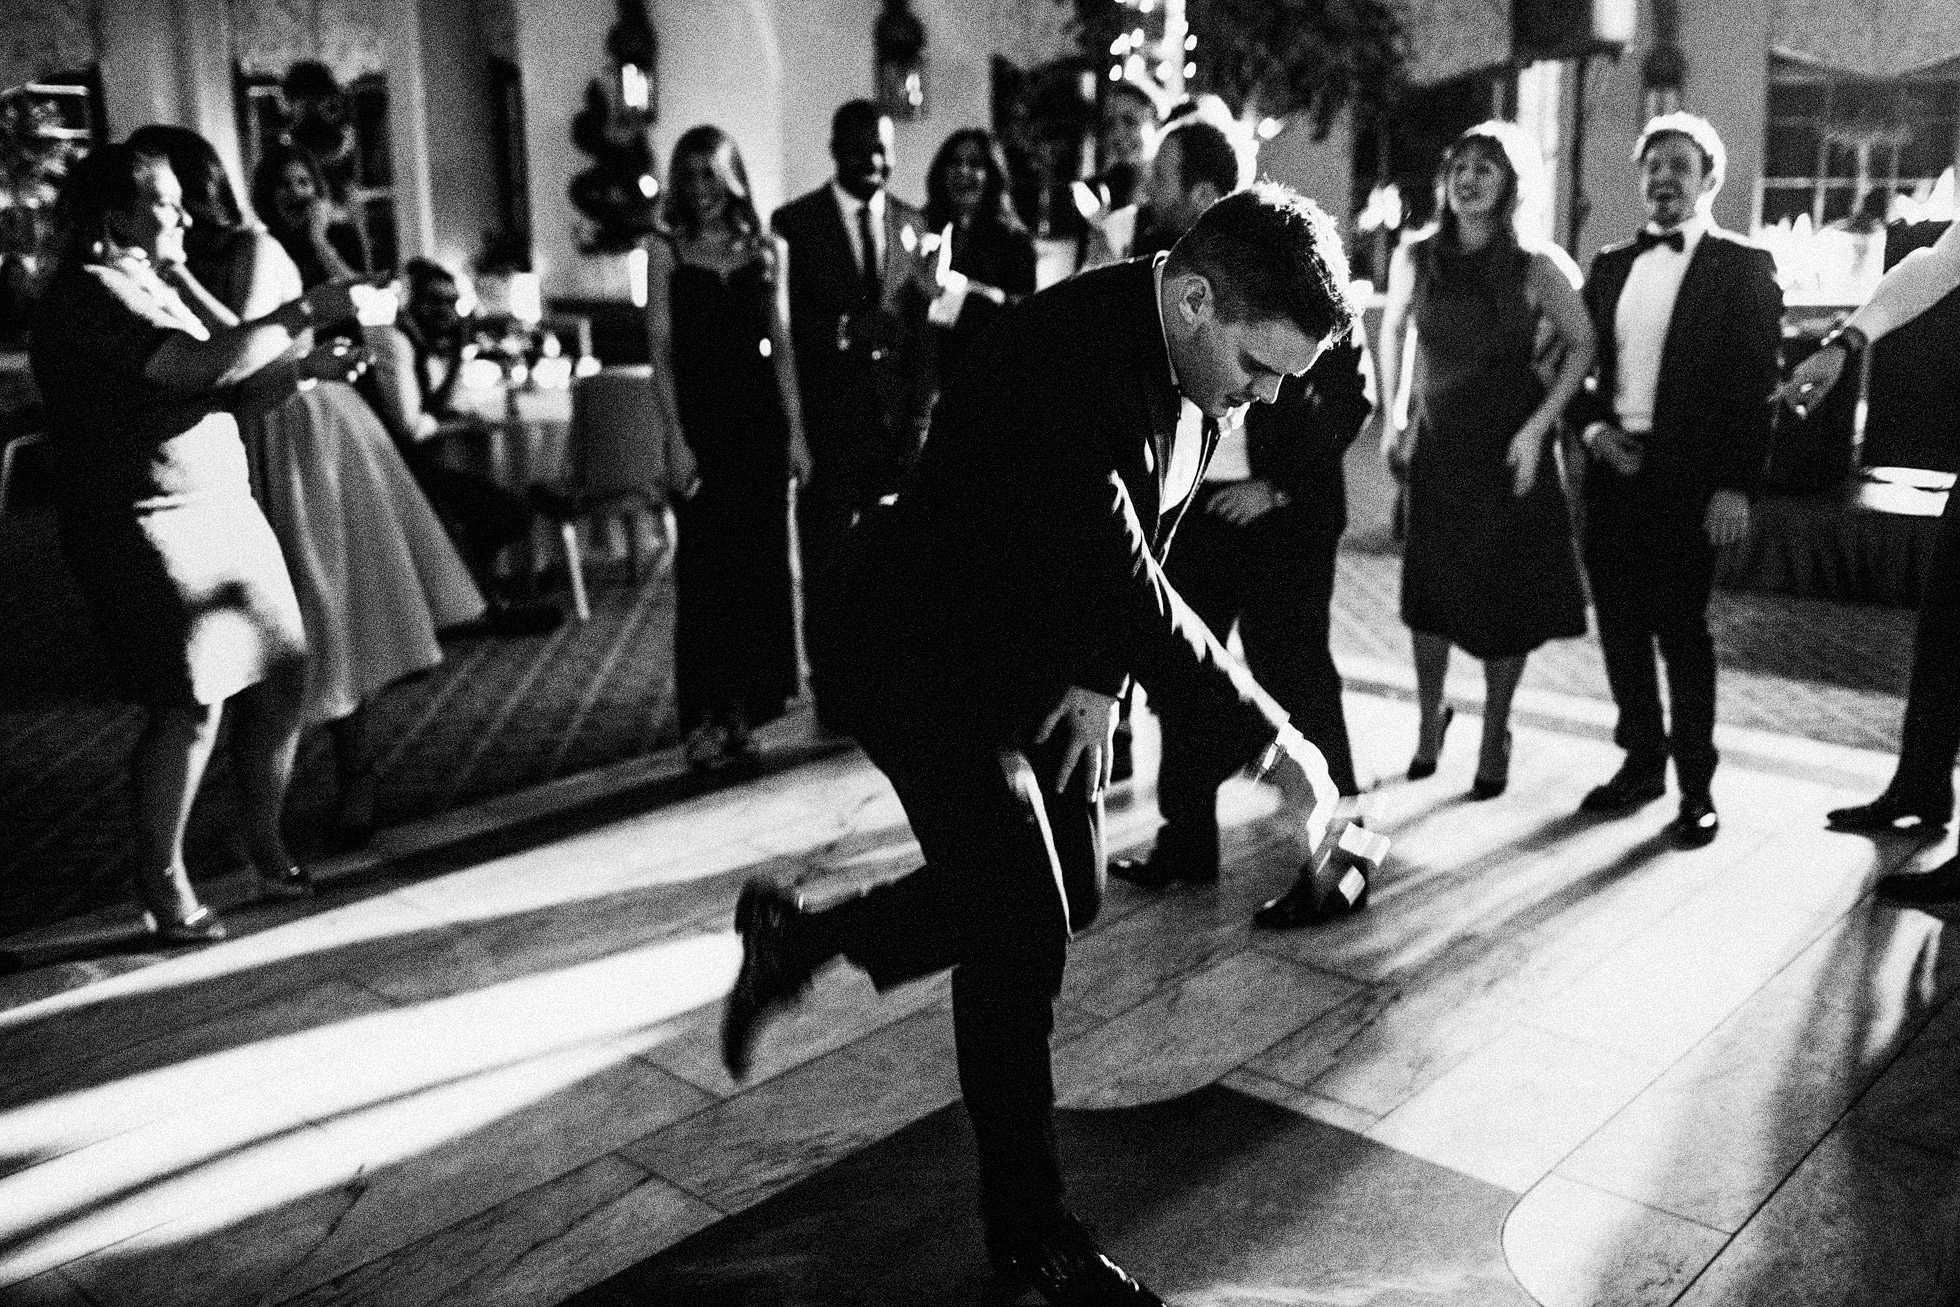 Wynyard Hall Dance Floor